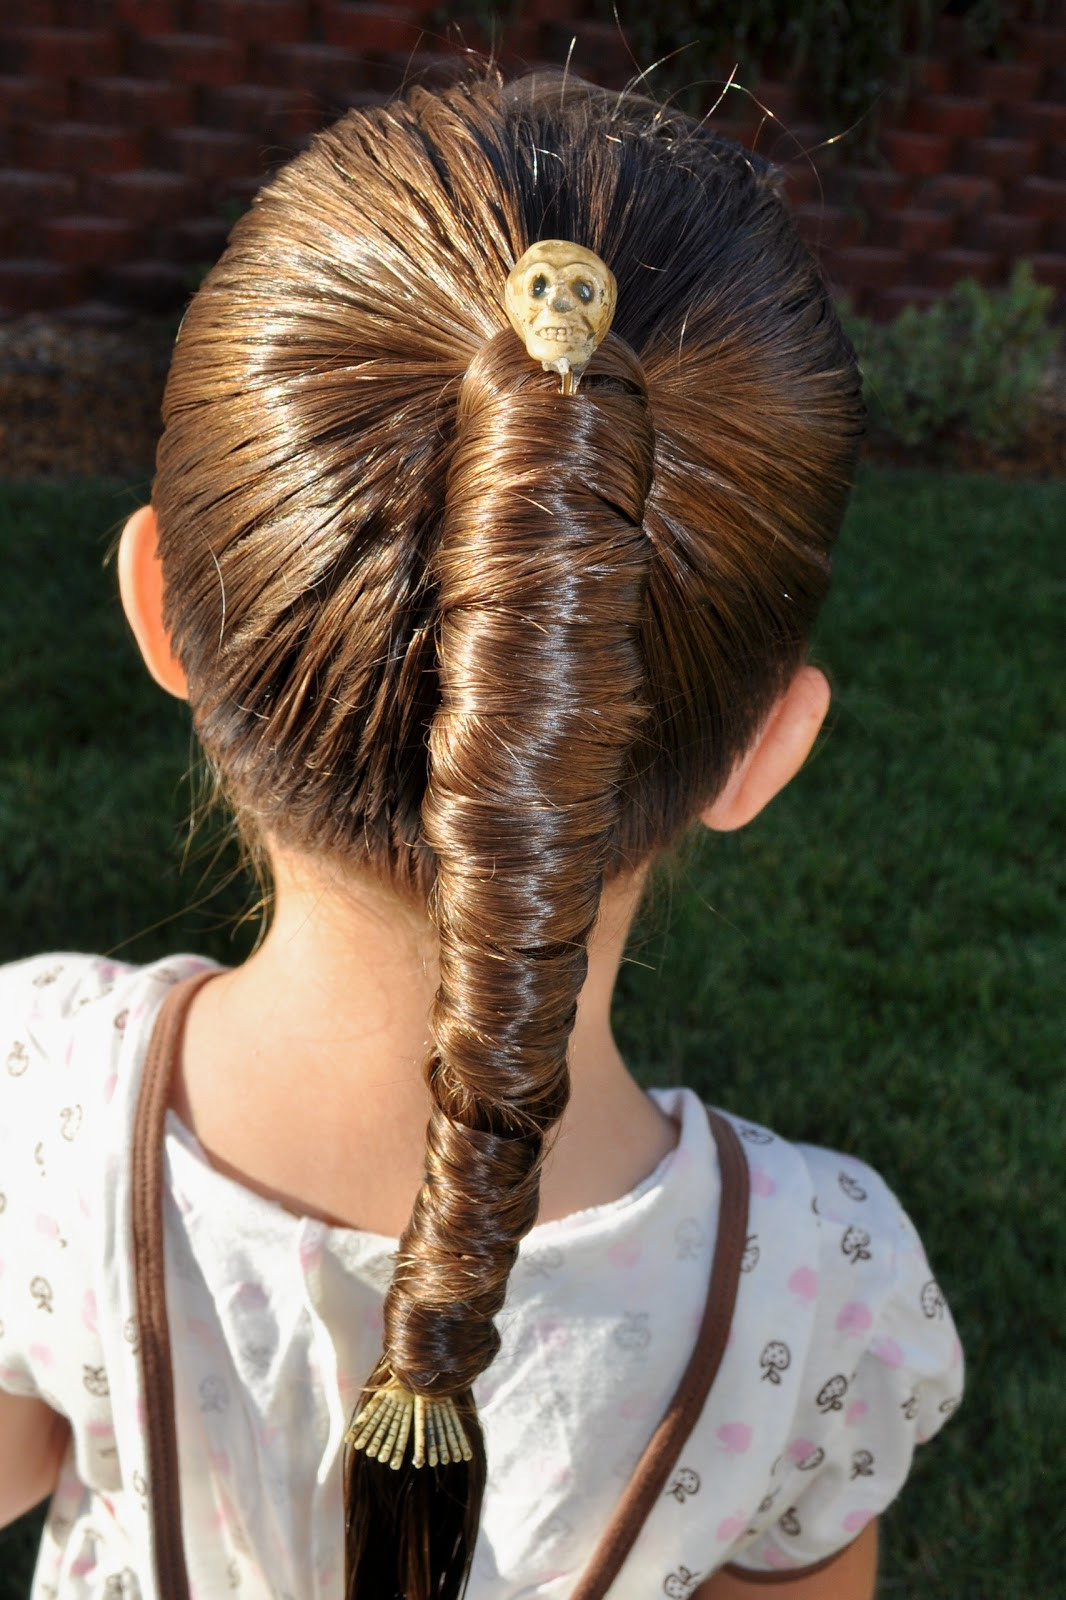 Best ideas about Halloween Hairstyles . Save or Pin Princess Piggies Halloween Hairdos The Mummy Now.